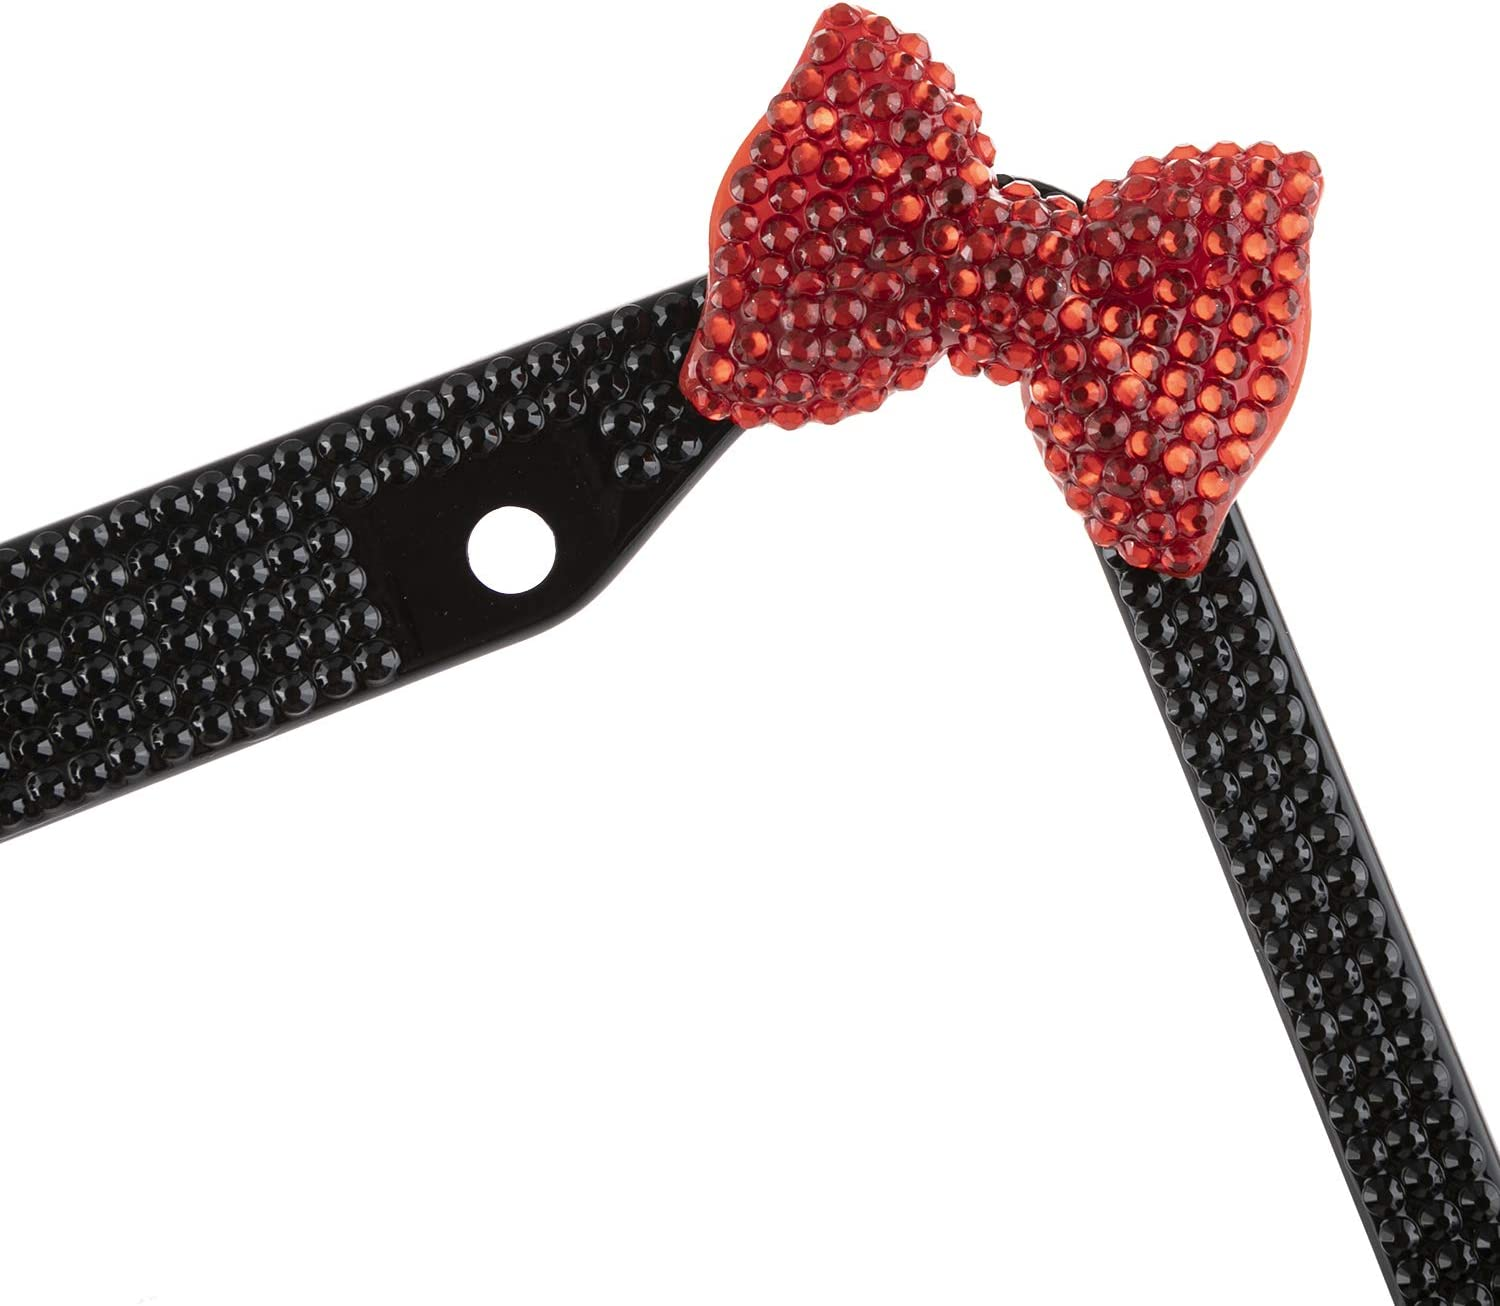 Fashion Purely Handmade Black Frame W//Red Bowknot Bling Crystal License Plate Frame Luxury Rhinestone Premium Stainless Steel Car//Truck//SUV License Plate Holder for Women,Lady,Girls 1 Frame